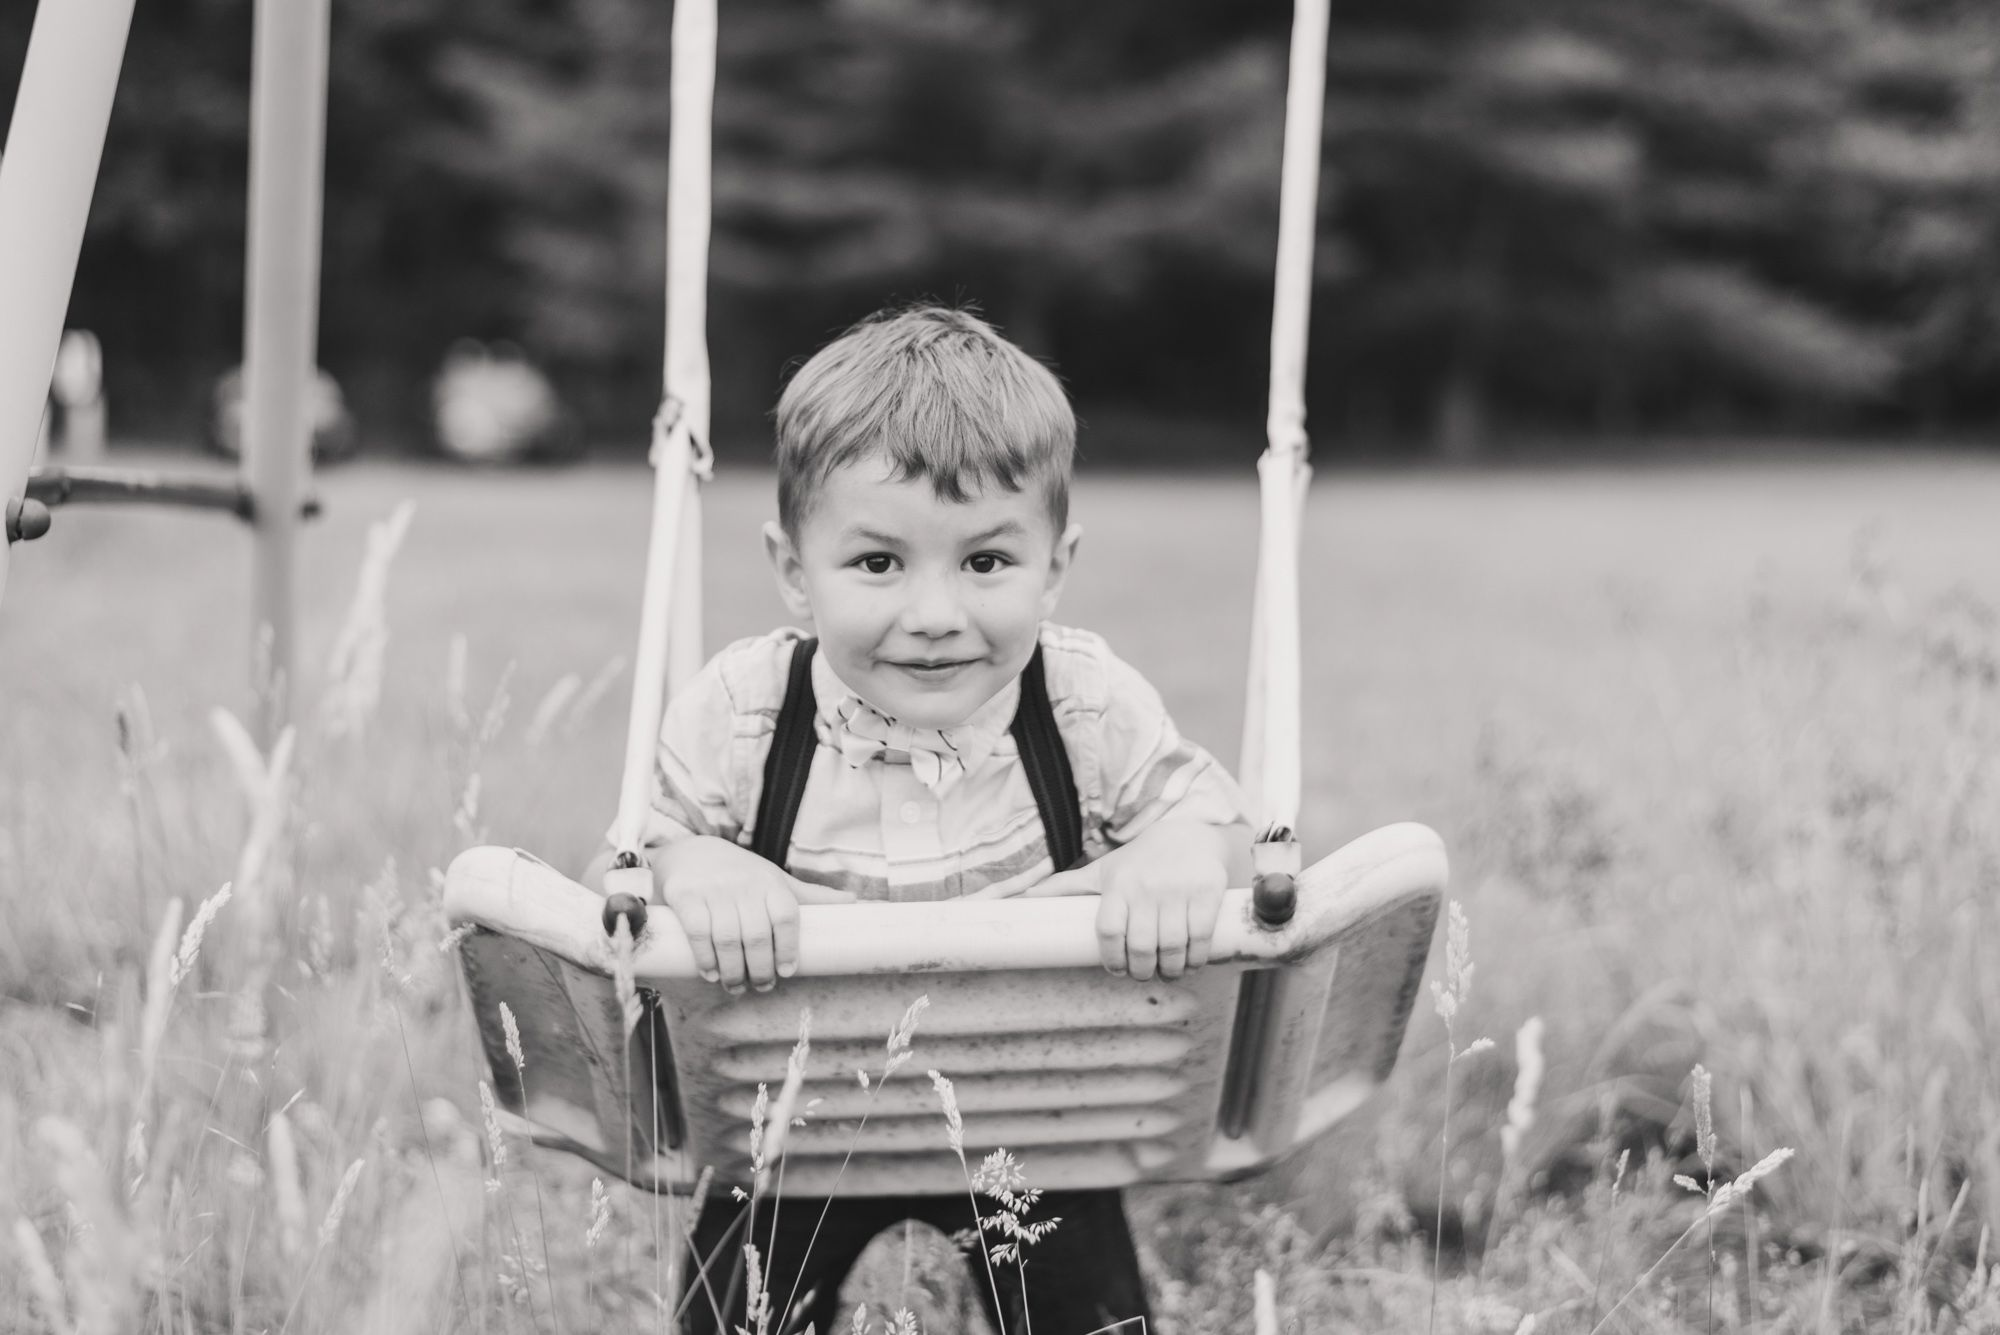 Little boy in suspenders swinging on swing set in black and white in Clarion Pennsylvania